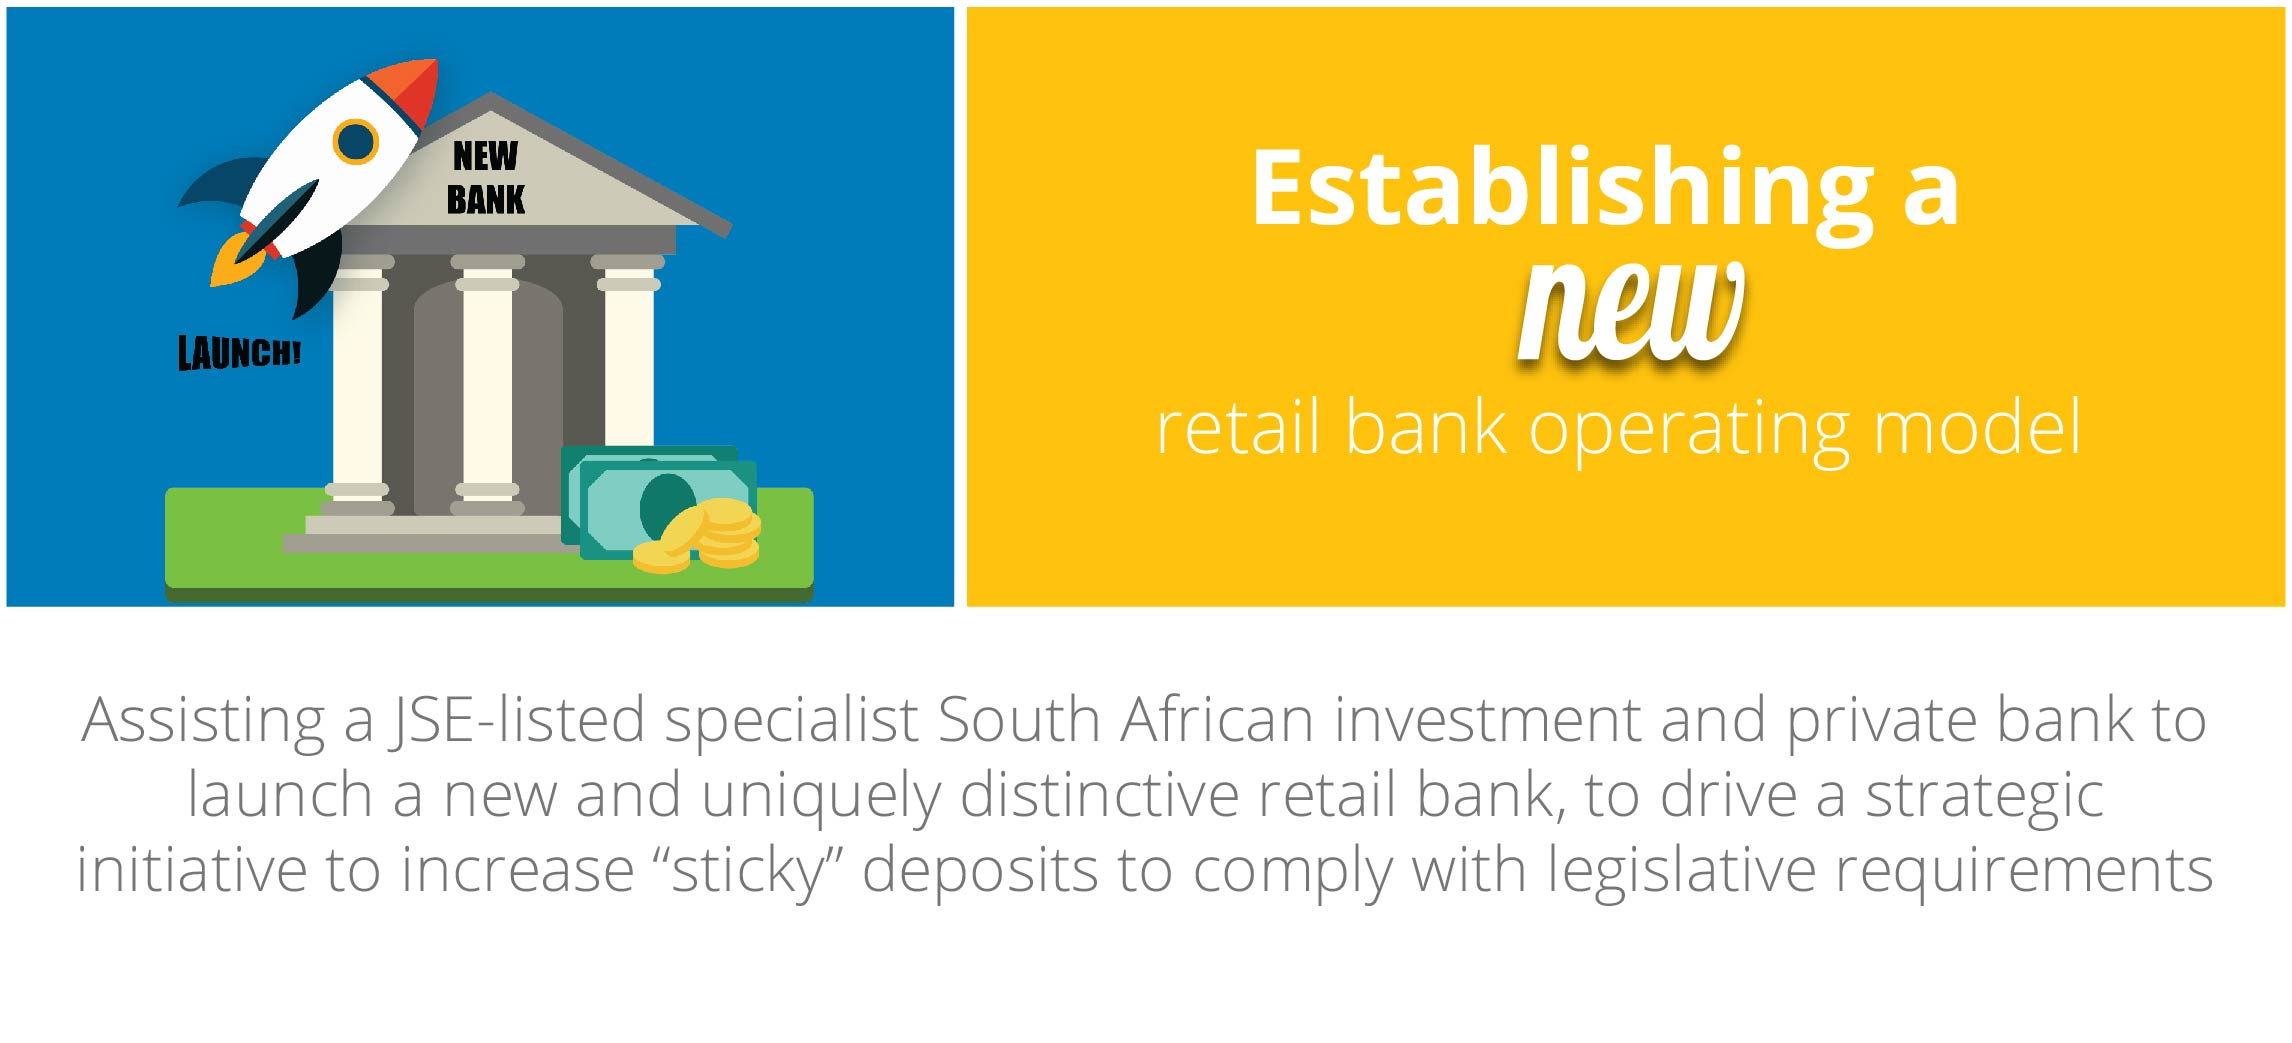 Case Study: Establishing a new retail bank operating model